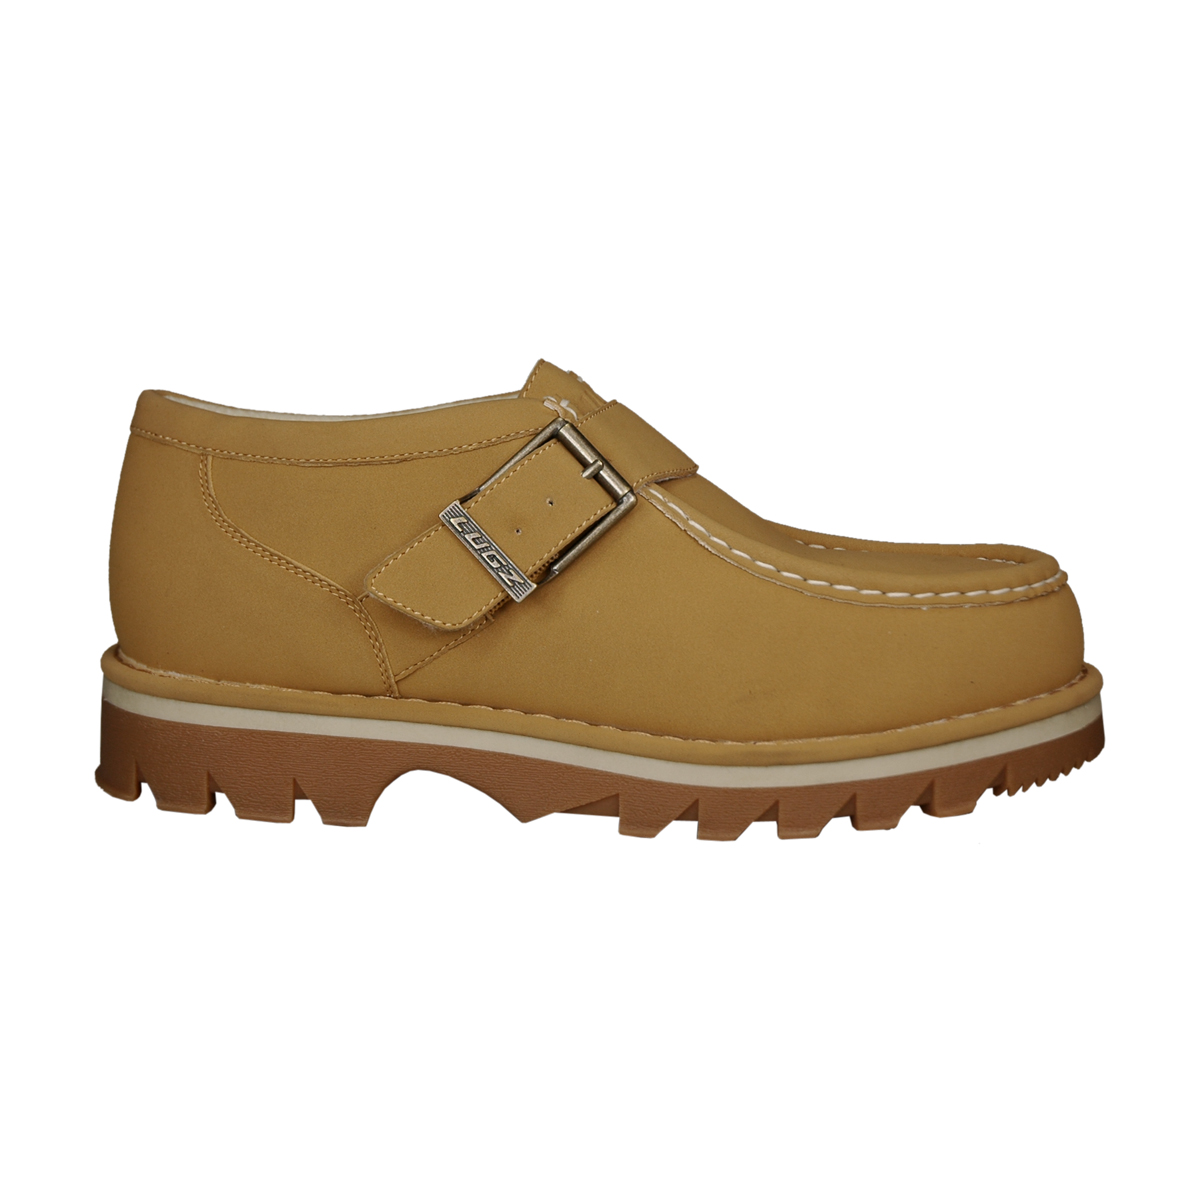 Buy Lugz Men's Breech Chukka Boot and other Industrial & Construction Boots at narmaformcap.tk Our wide selection is eligible for free shipping and free returns.